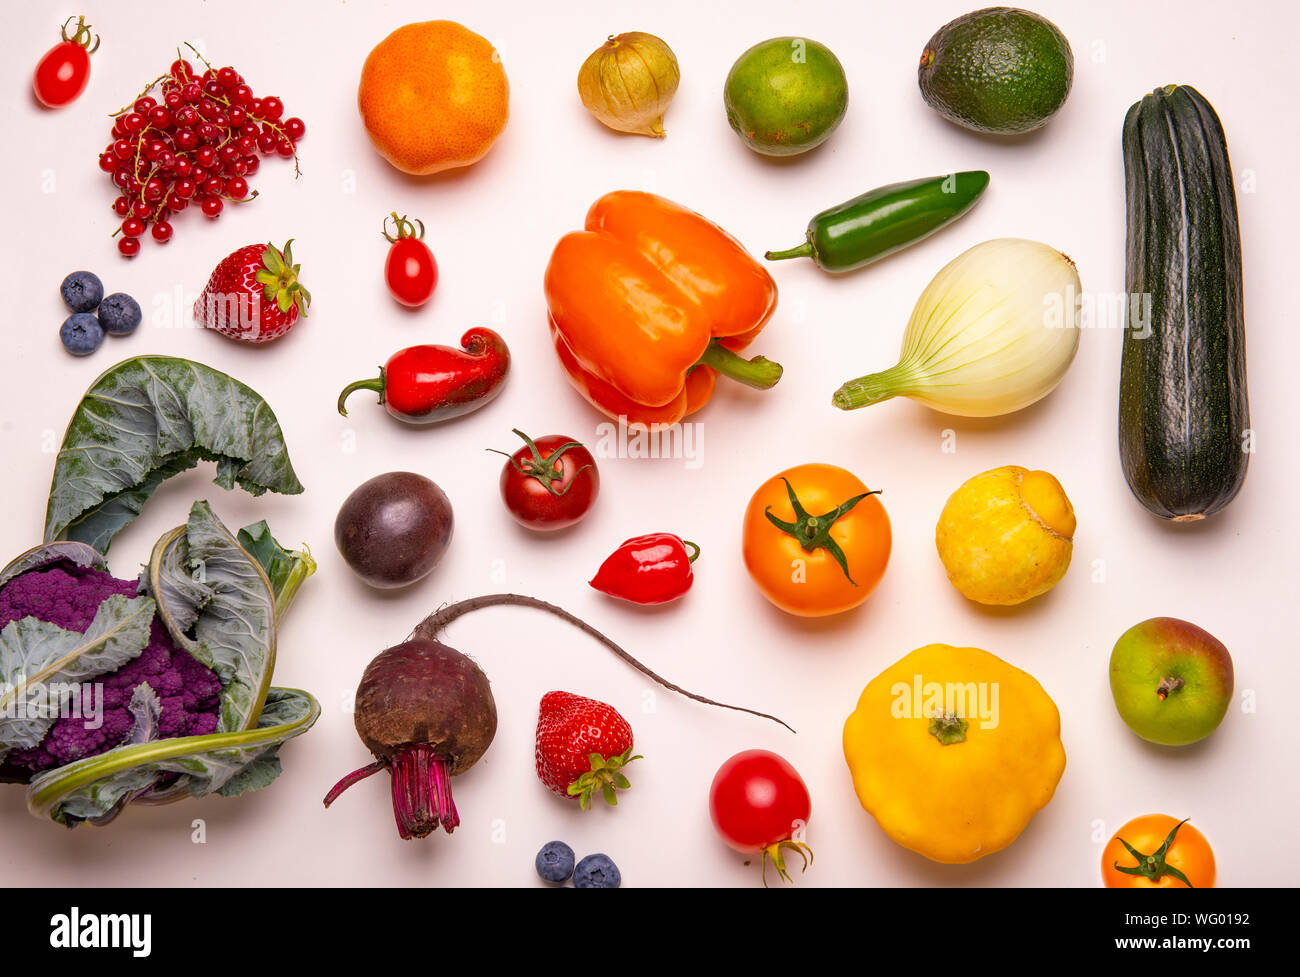 Assorted of fresh fruits and vegetables arranged in a rainbow color pattern over whiate background Stock Photo